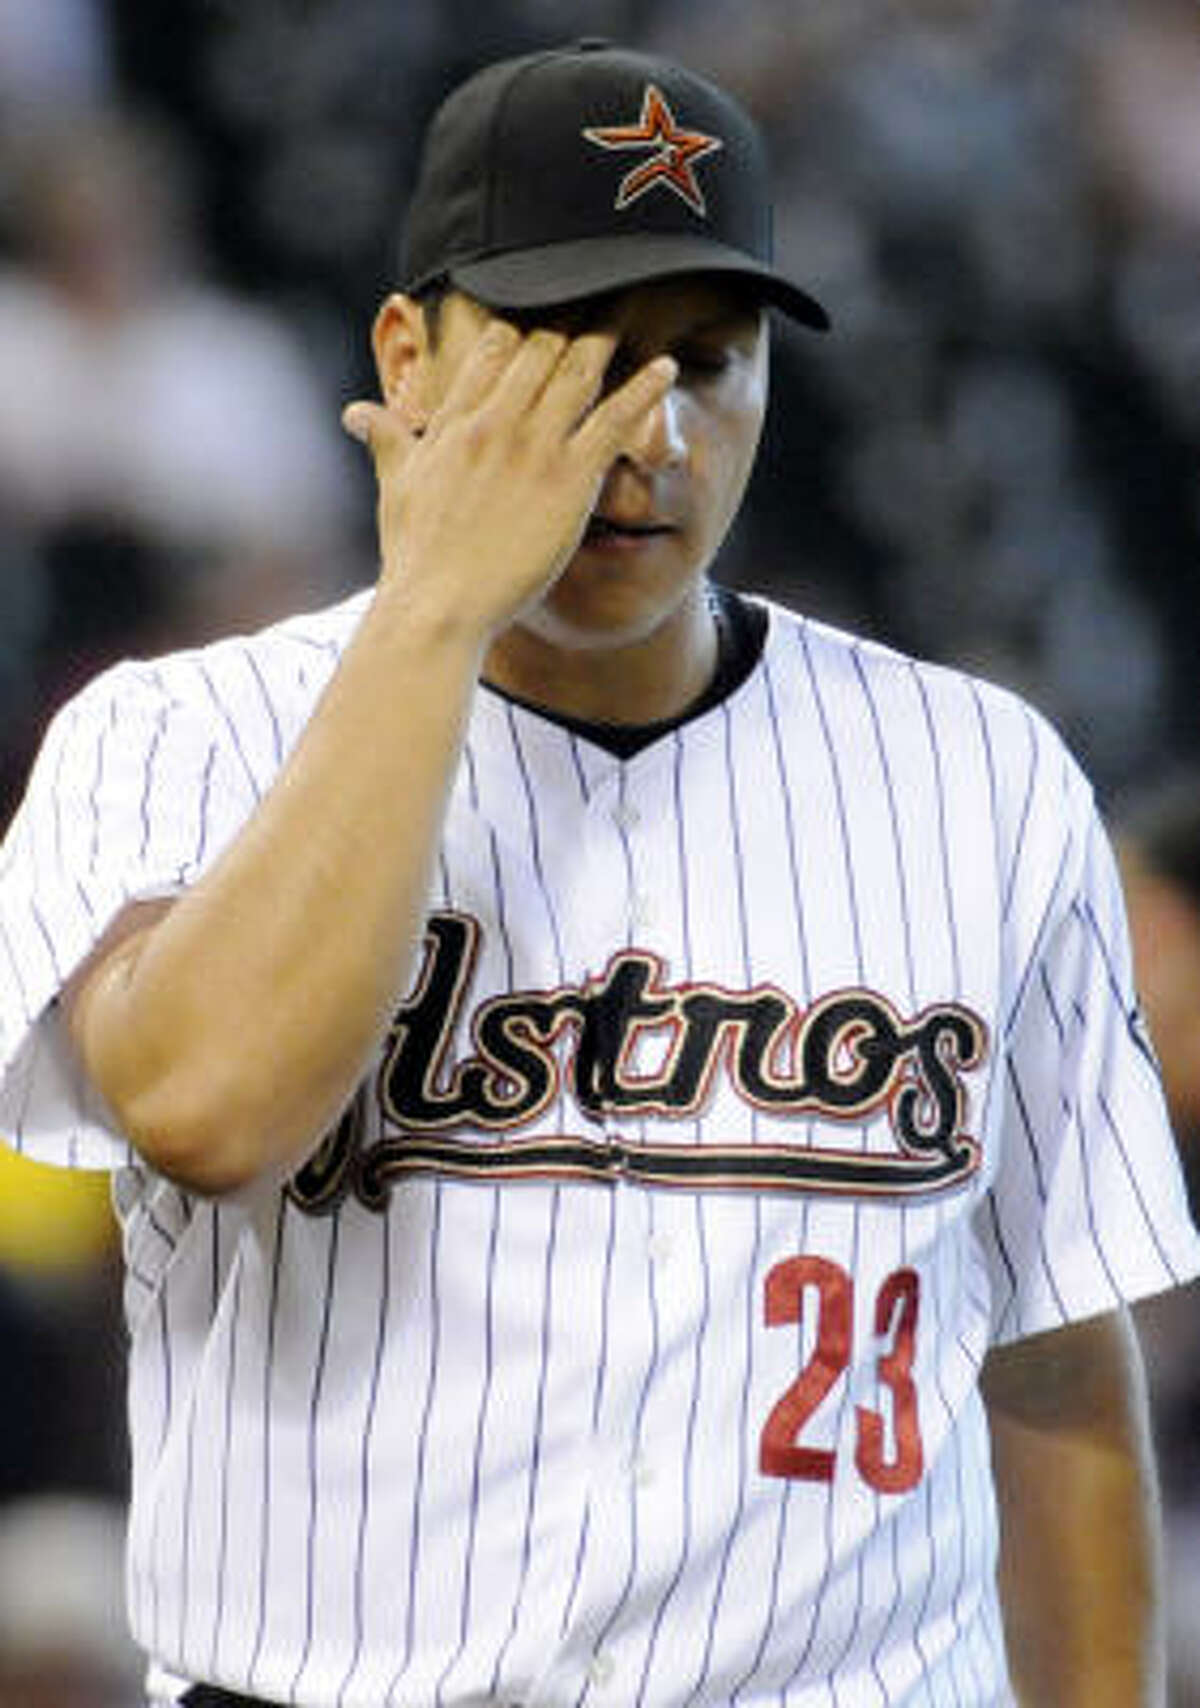 Astros starter Russ Ortiz wipes his brow during the first inning. He was pulled in the third inning.